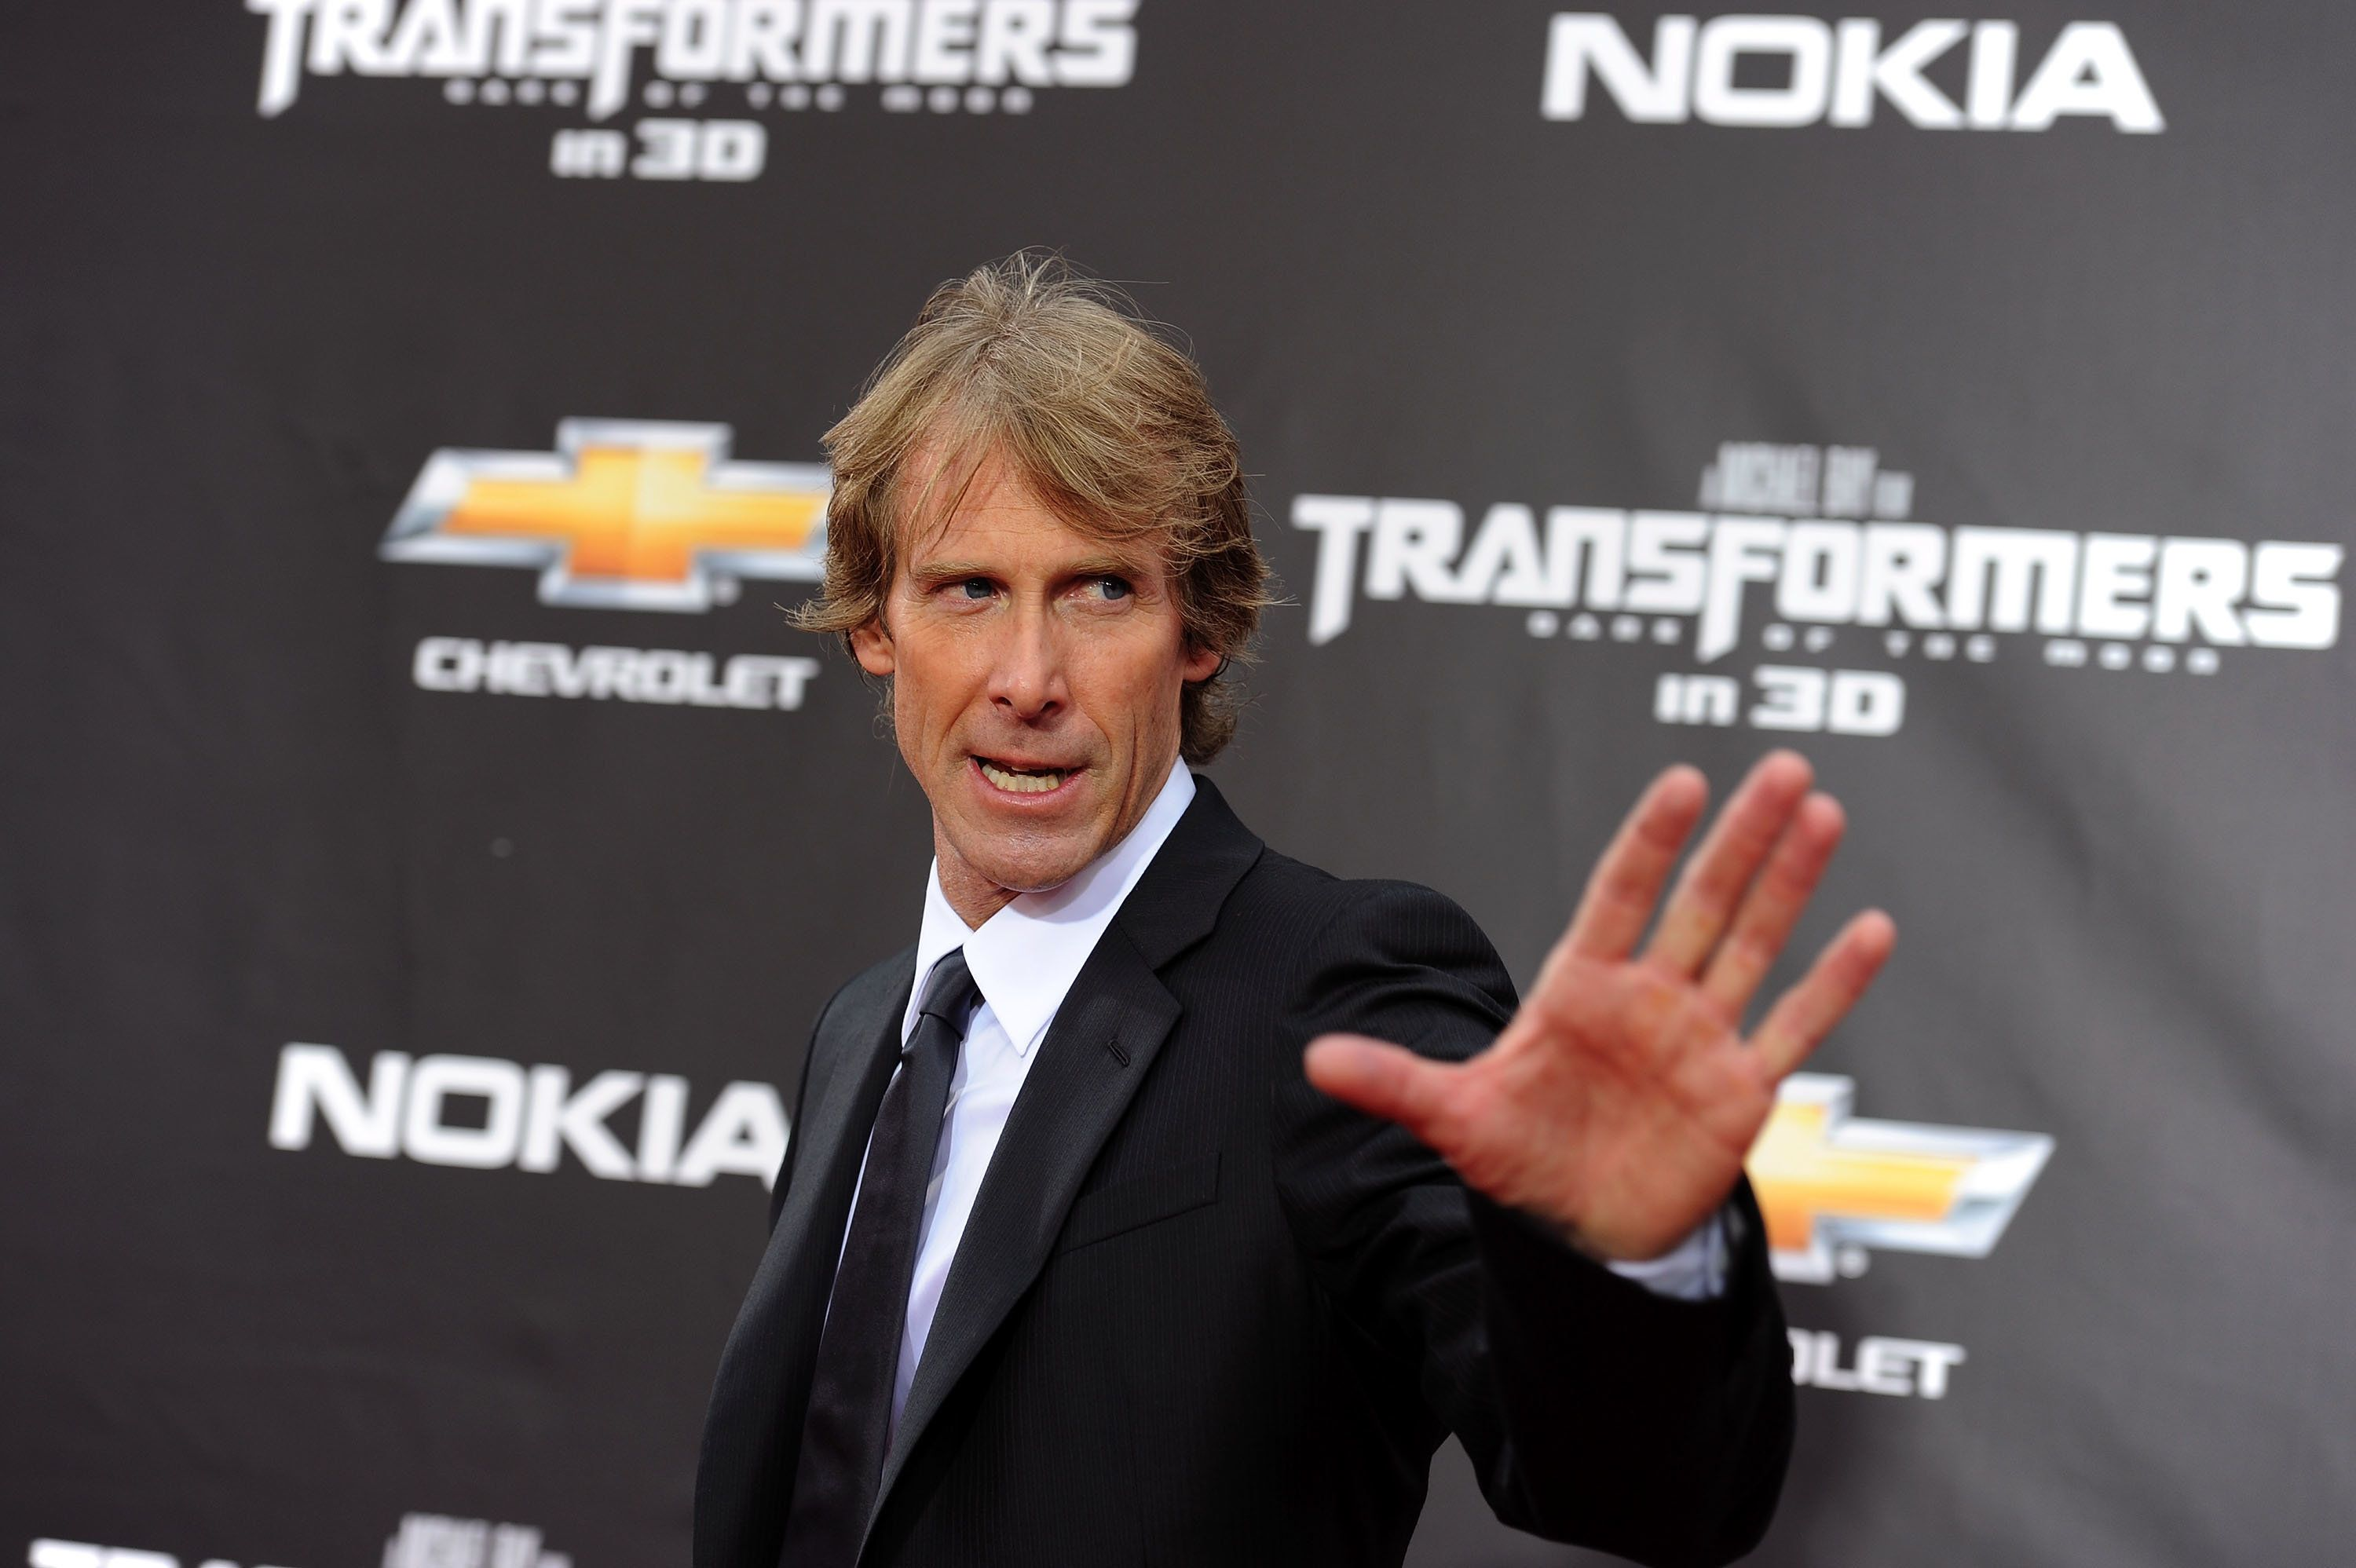 NEW YORK, NY - JUNE 28:  Producer/director Michael Bay attends the 'Transformers: Dark Of The Moon' premiere in Times Square on June 28, 2011 in New York City.  (Photo by Jason Kempin/Getty Images)